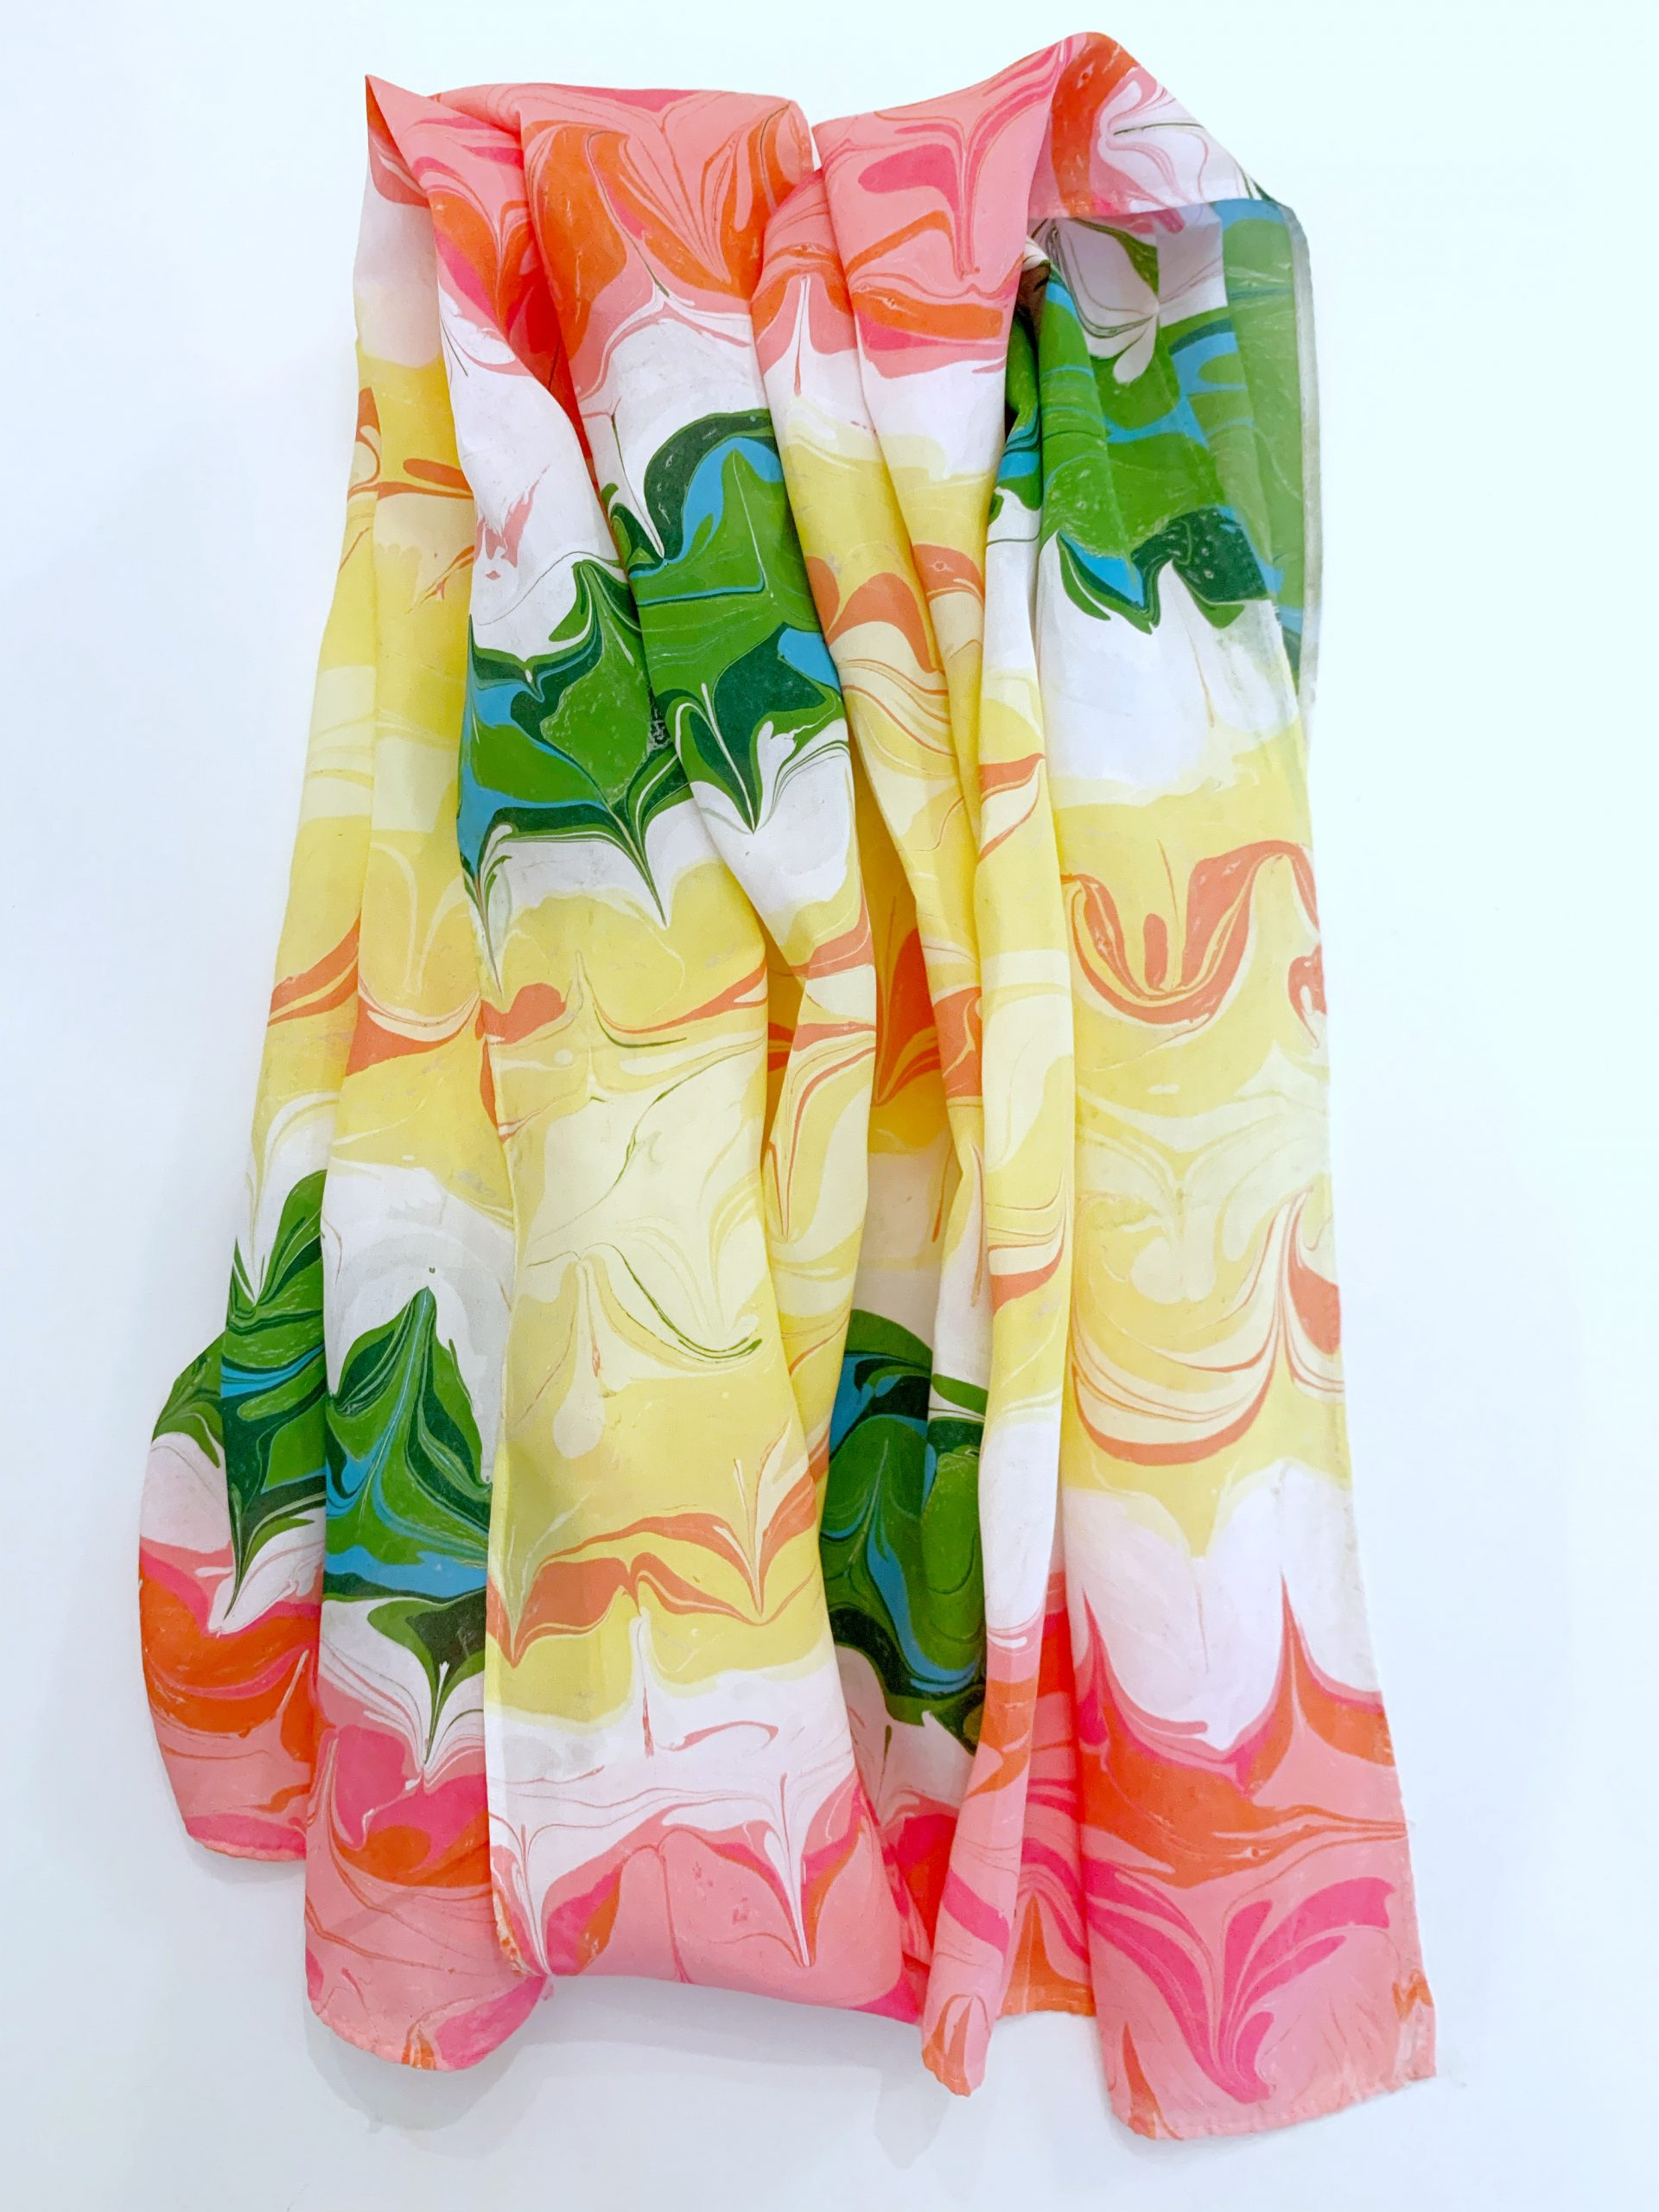 Pink, yellow, and green silk scarf